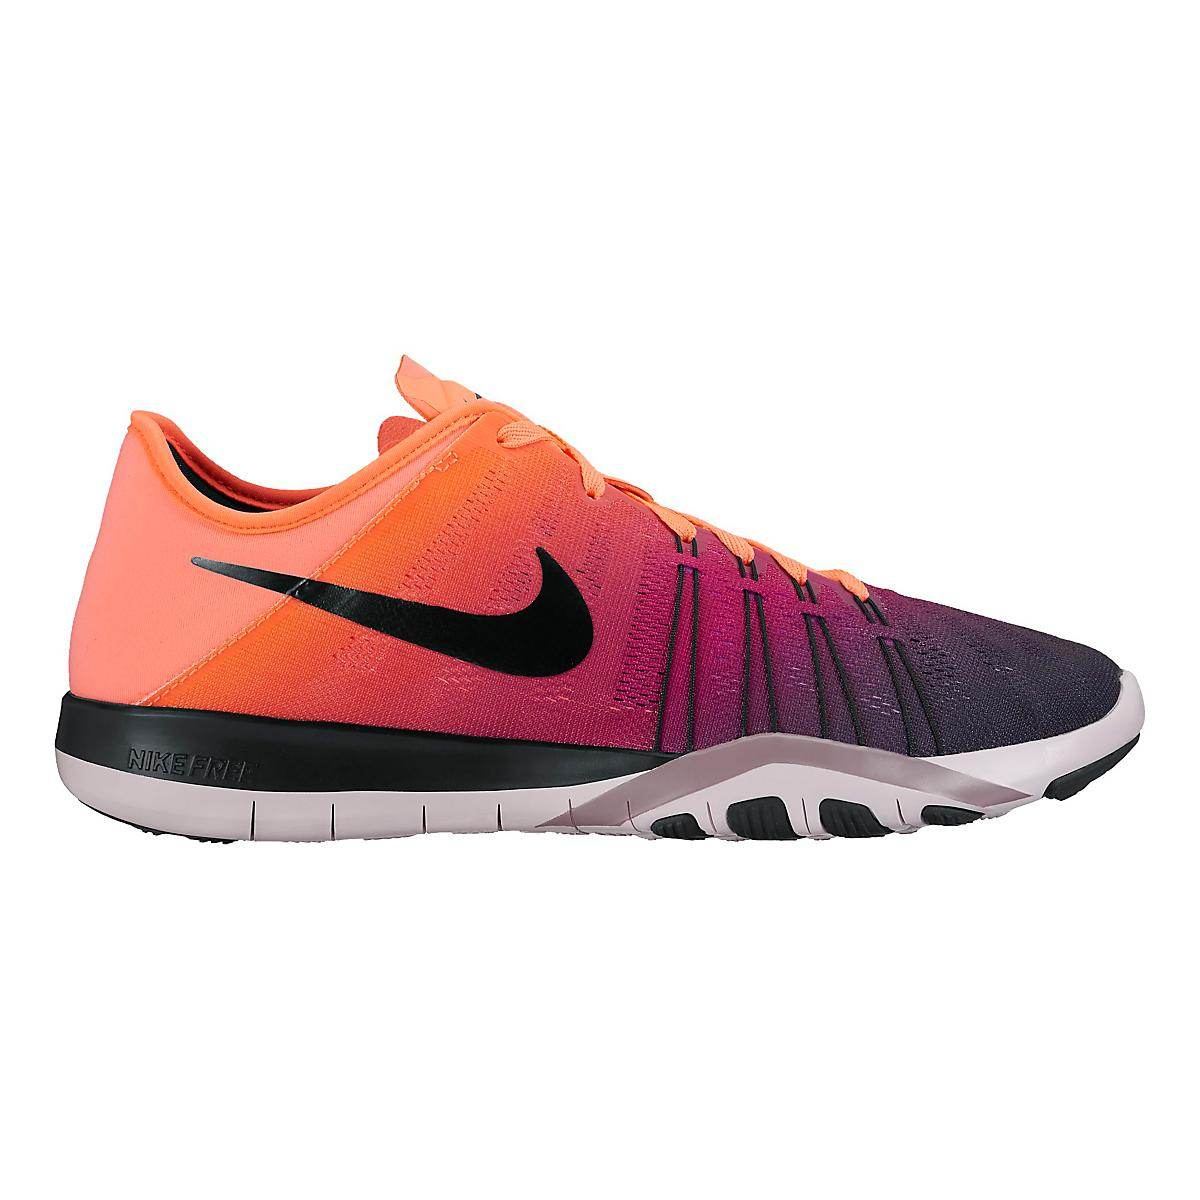 Womens Nike Free TR 6 Spectrum Cross Training Shoe at Road Runner Sports 36c0ab7ff